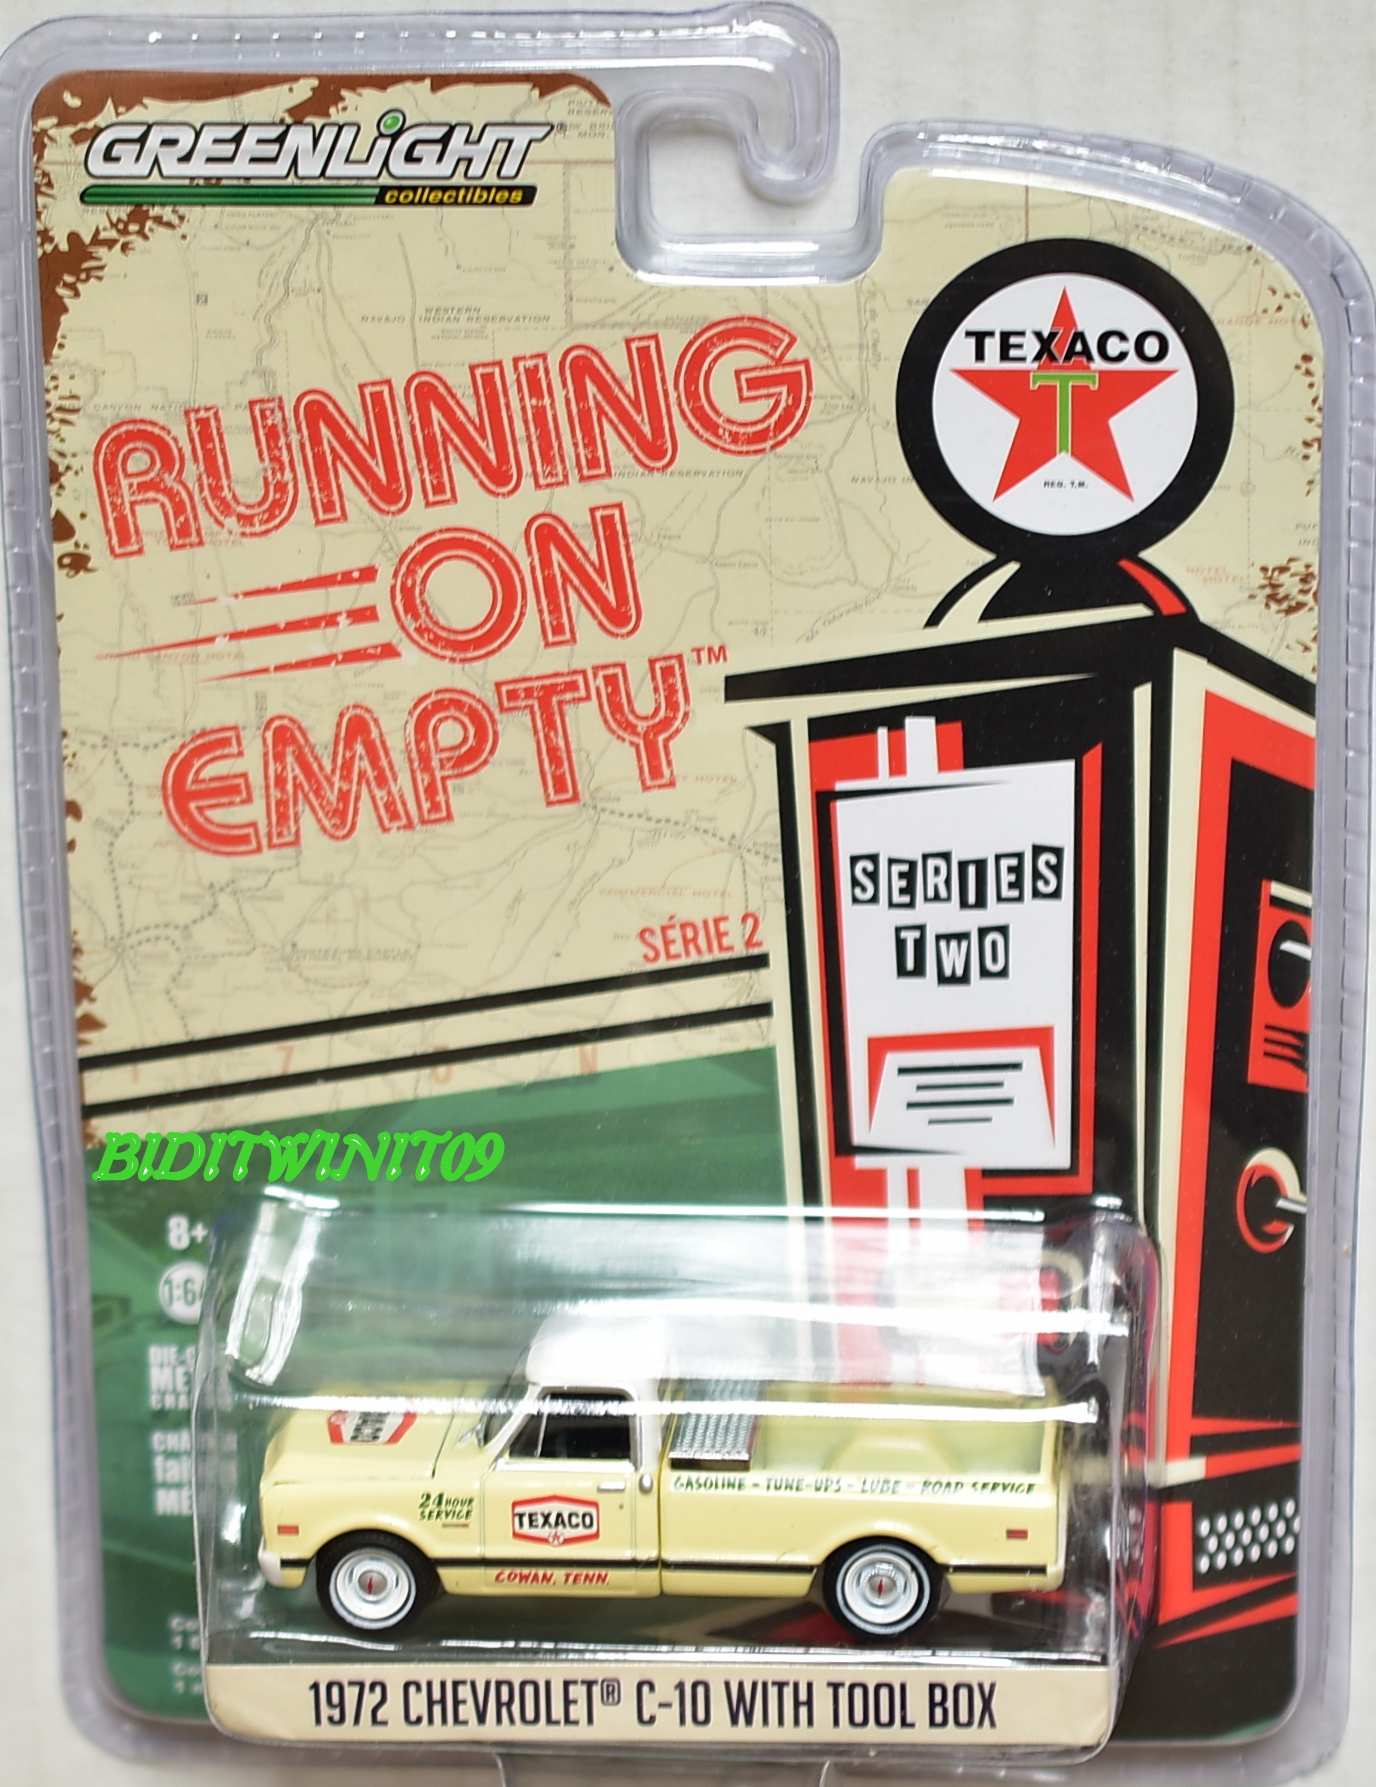 GREENLIGHT RUNNING ON EMPTY 1972 CHEVROLET C-10 WITH TOOL BOX SERIES 2